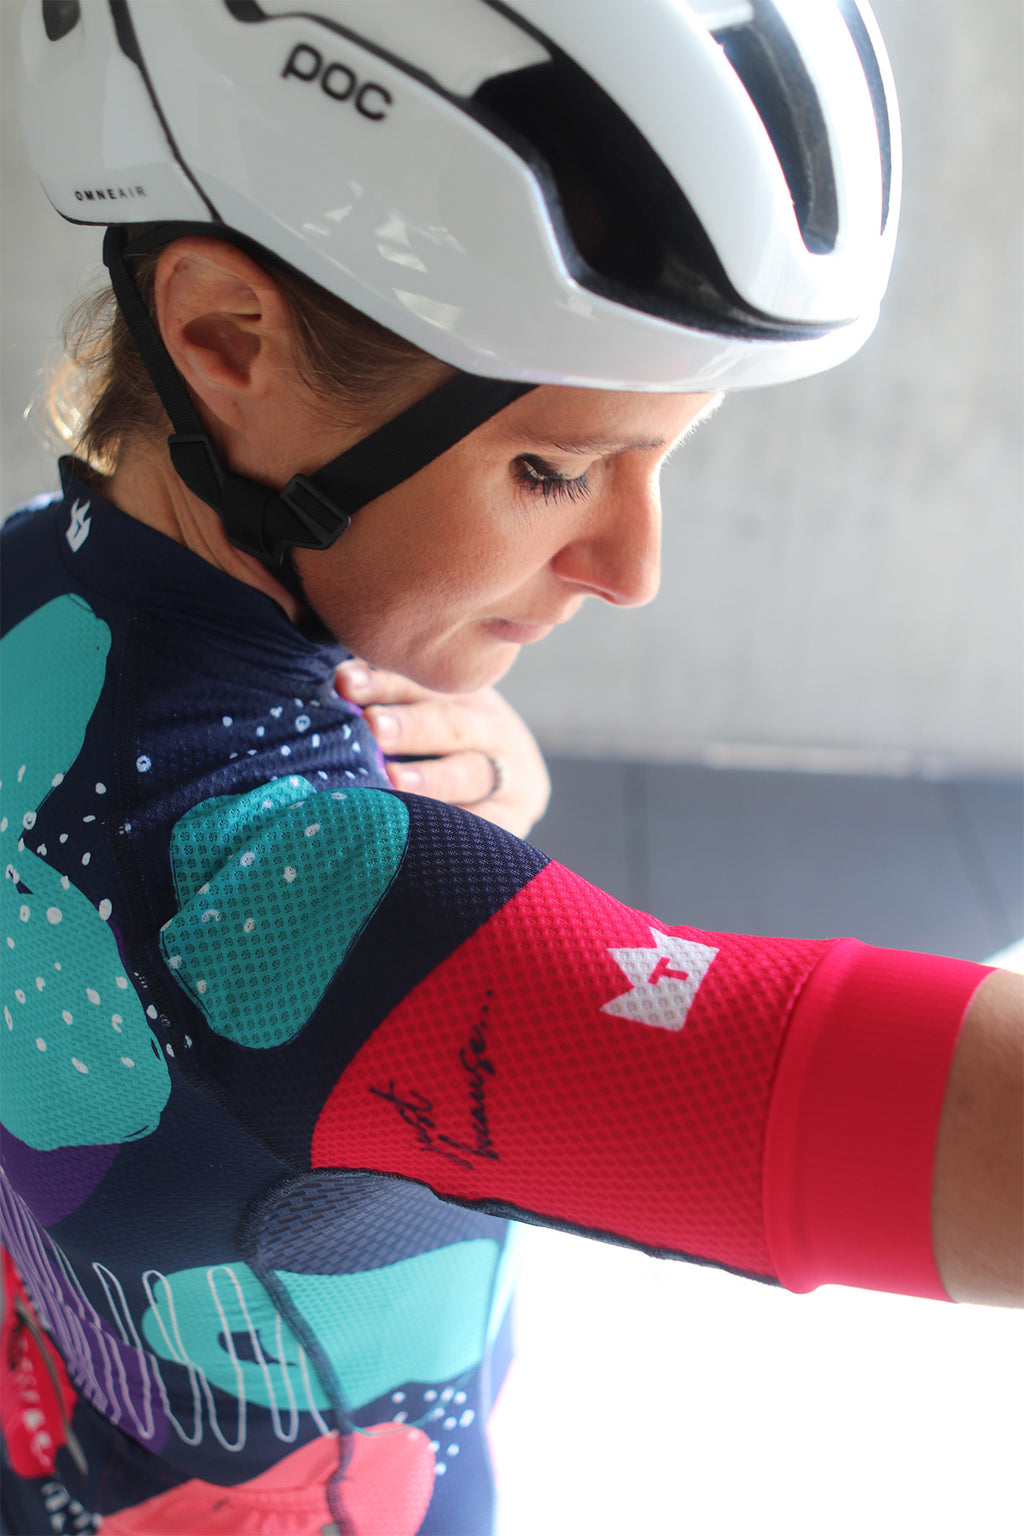 Womens Cycling Jersey